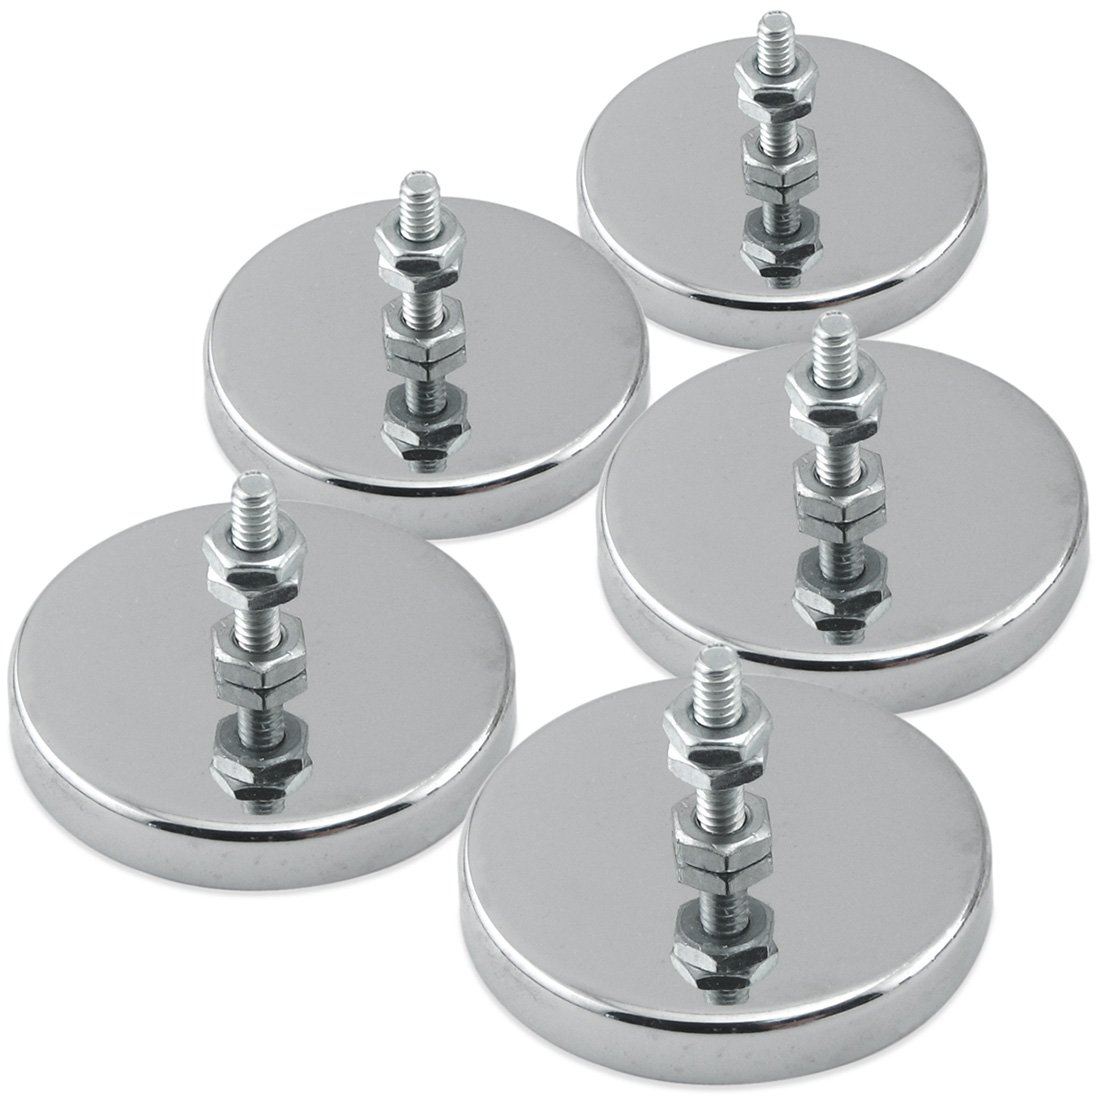 """Master Magnetics RB50B3NX5 Magnetic Hook, Round Base Magnet Fastener with Bolt Chrome Plate, 2.04"""" Diameter, 1.25"""" Total Height, 35 Pounds, Silver (Pack of 5)"""